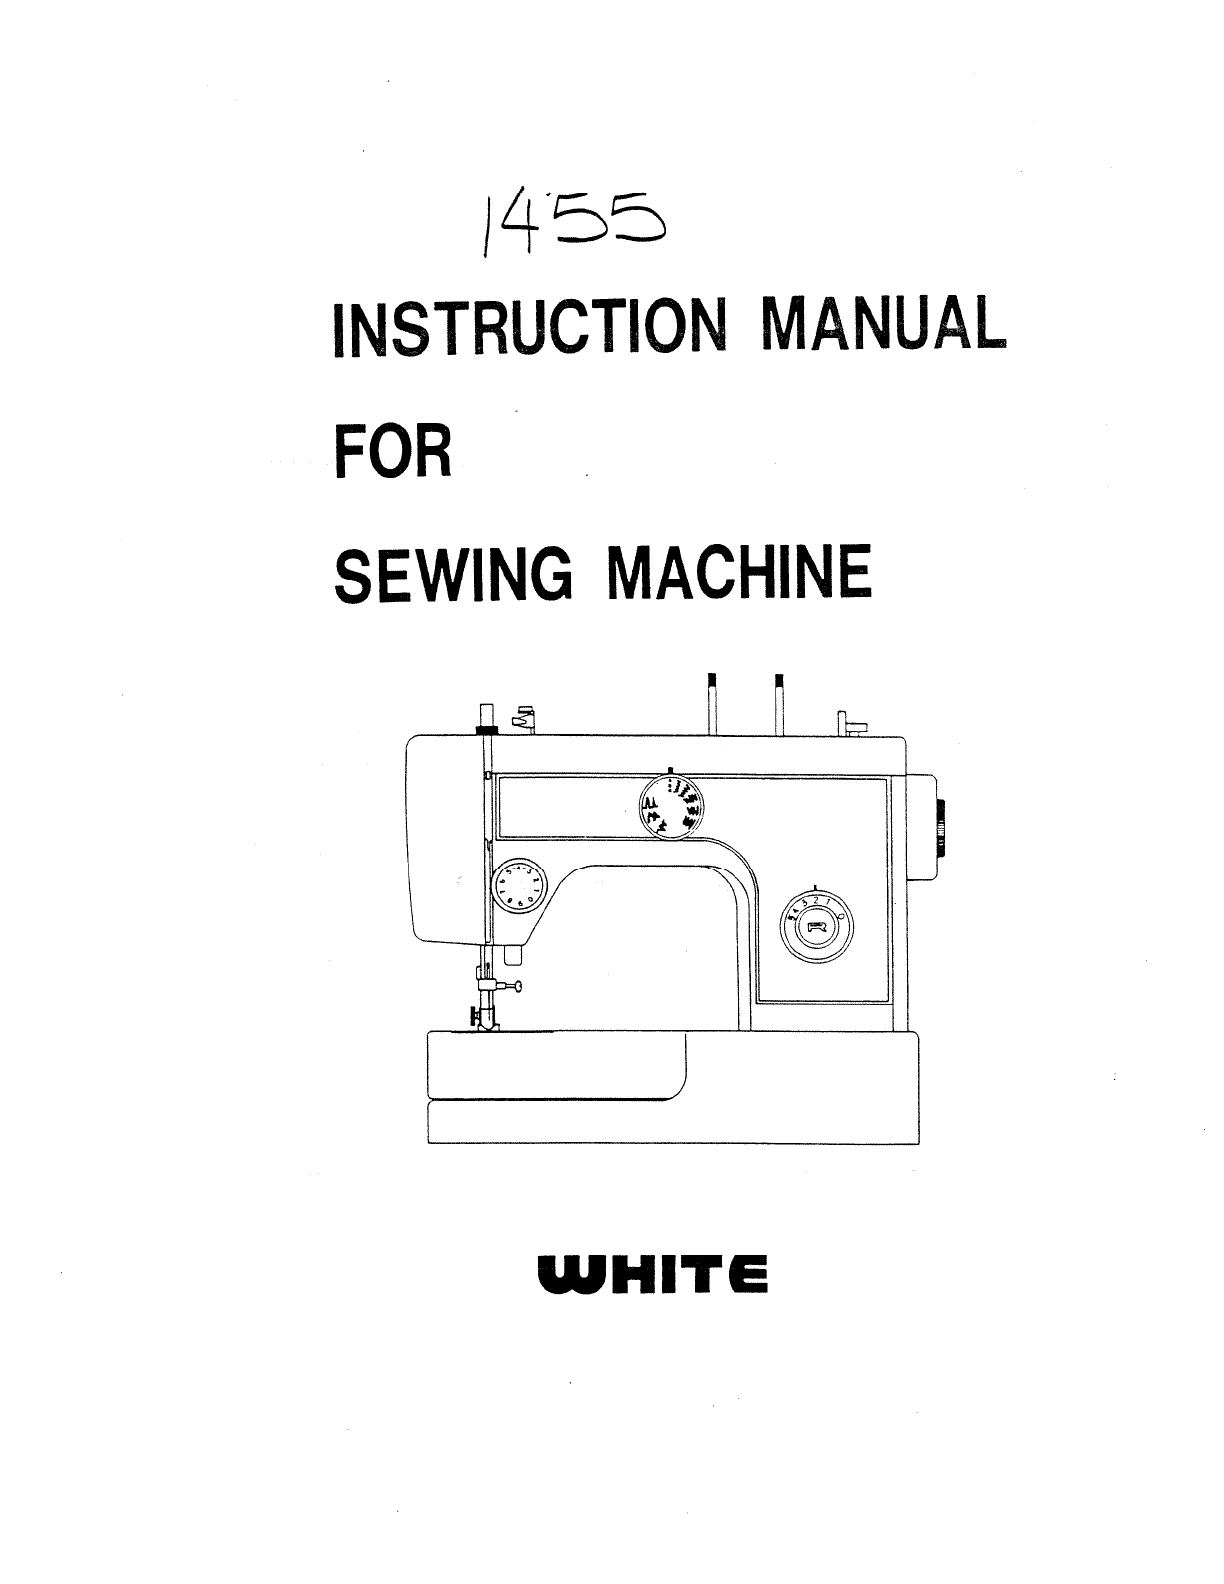 4 More Recent Patterns Manual Guide